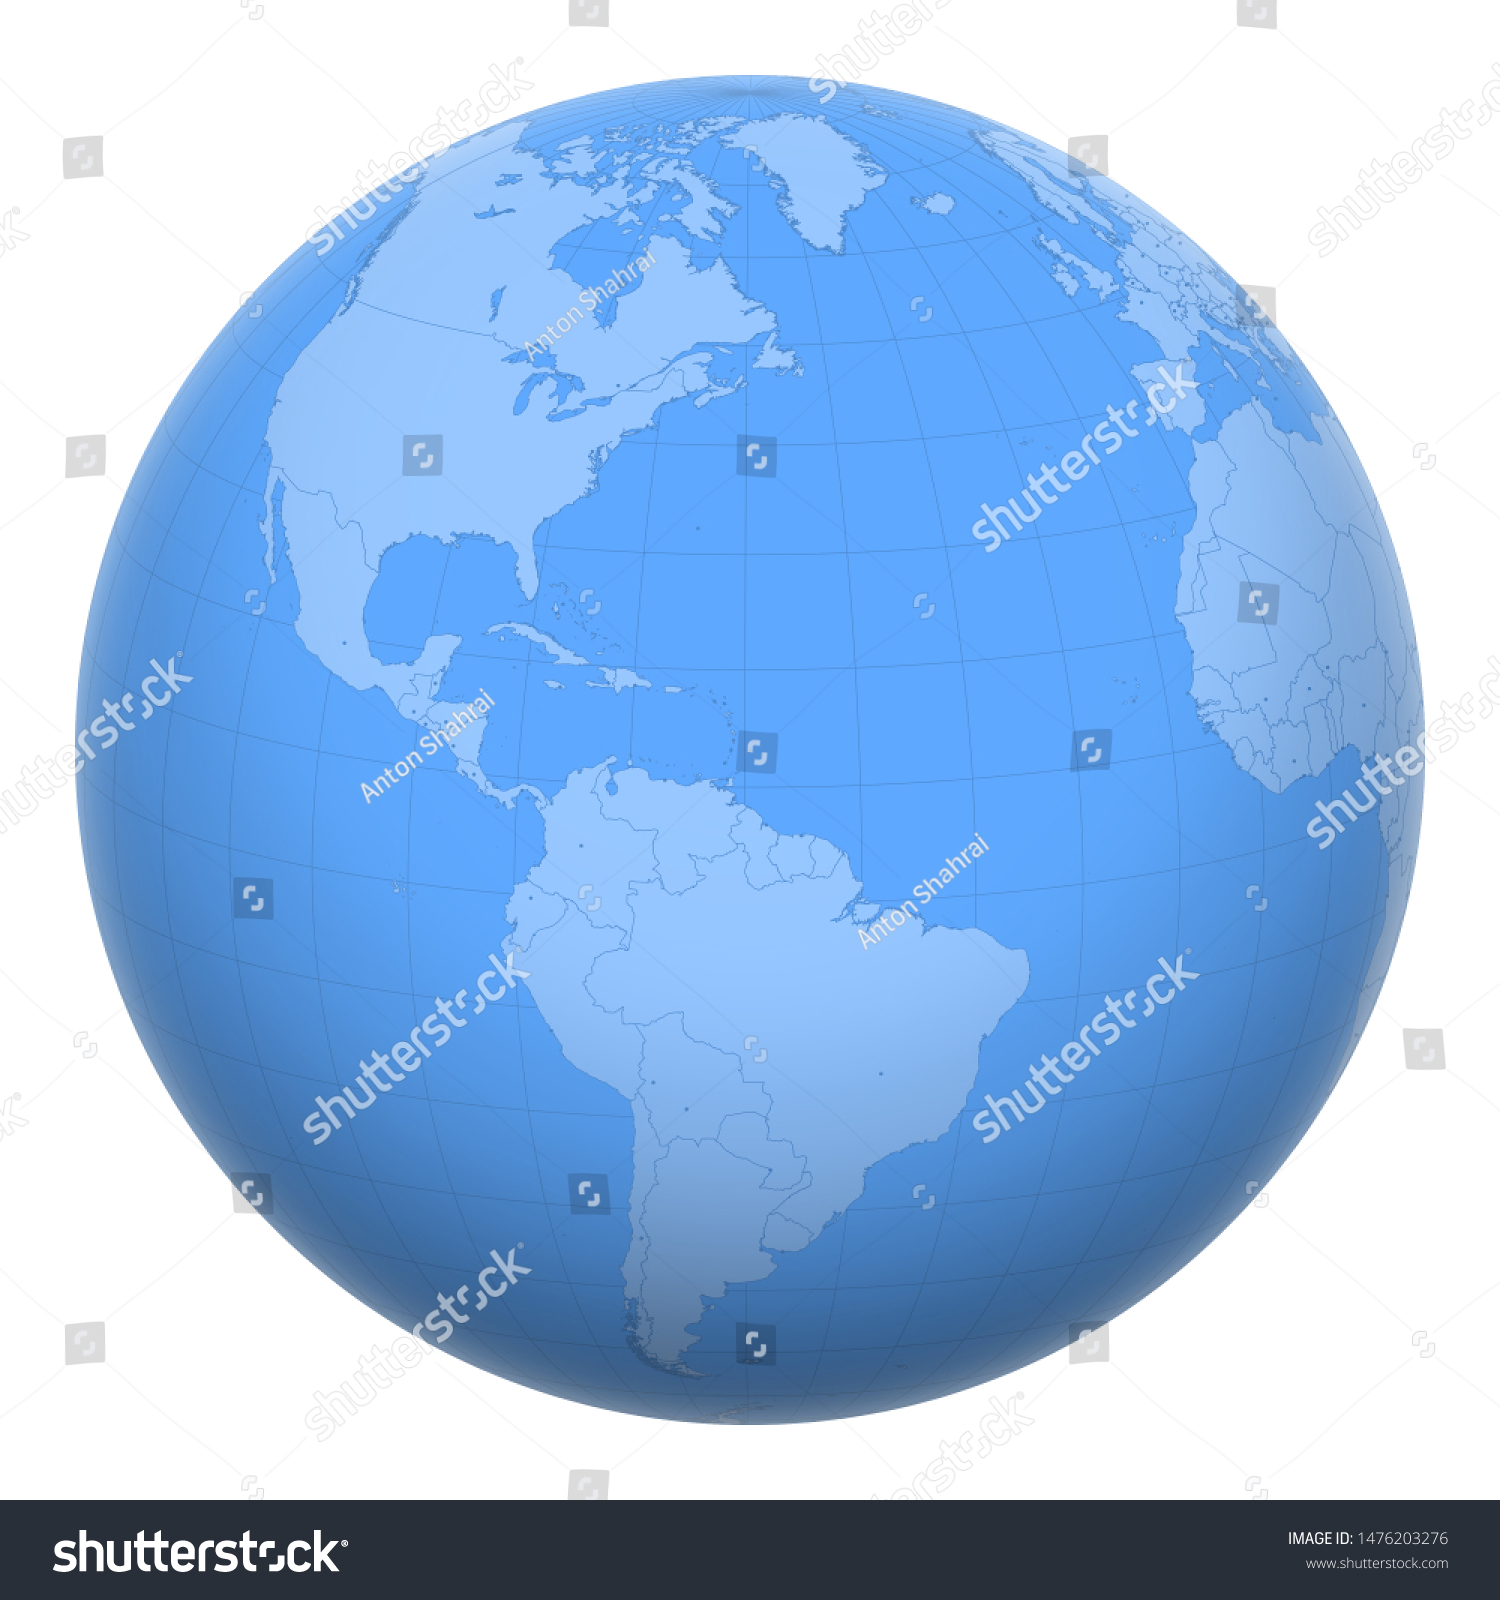 Picture of: Barbados On Globe Earth Centered Location Stock Vector Royalty Free 1476203276